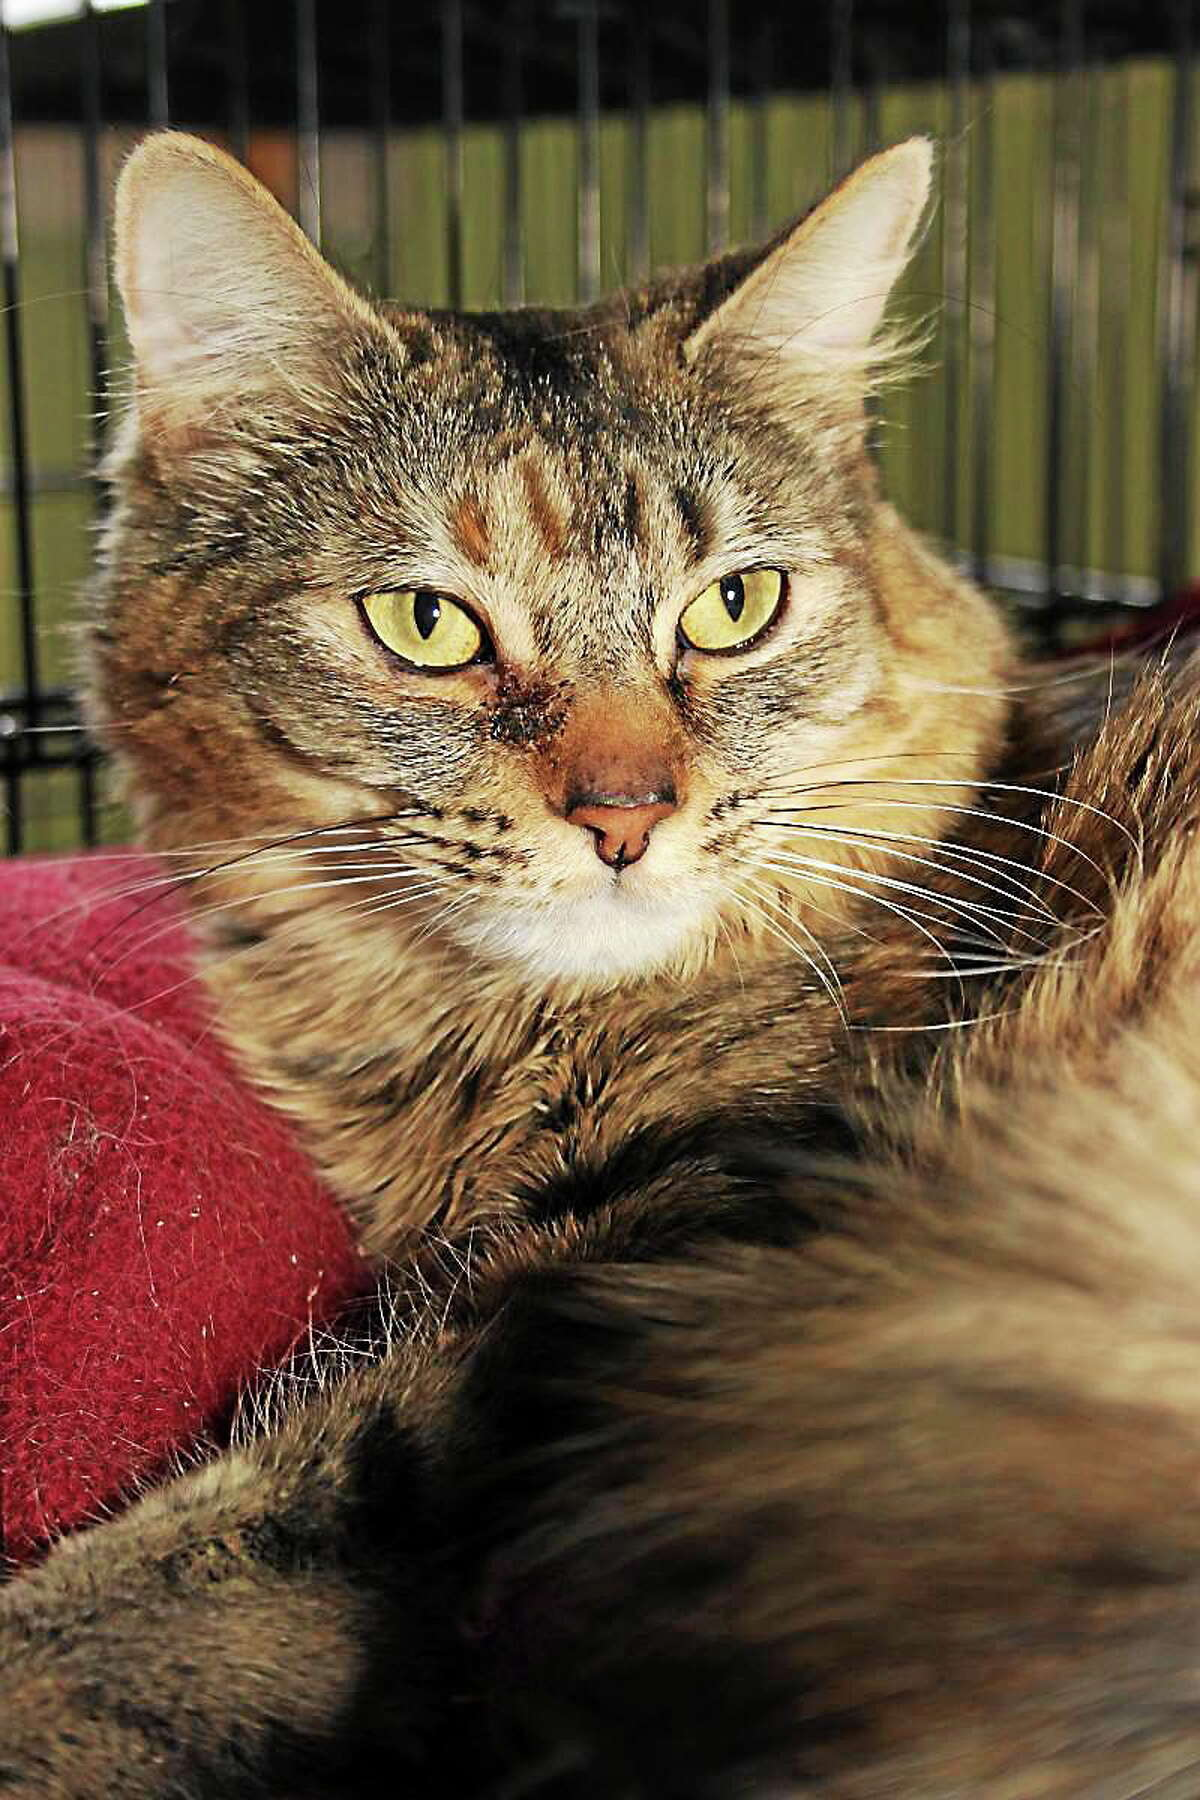 Fiona and Luna Fiona and Luna have lived together in the same household for many years and need to be adopted together. The are both wonderful to pet because their fur is so soft... and, luckily, they both adore being petted. Fiona has long hair and is the more outgoing of the two. She loves to explore and find people who will pet her. Luna prefers to stay in her cage and be petted there, but she also appreciates it when you dangle a wand toy for her playing enjoyment. Both are sad to find themselves homeless and are hoping youíll consider adopting them. Please drop by our adoption center in Granby and visit these two wonderful kitties. Reach Maryís Kitty Korner at 860-379-4141 or 413-297-0537 or visit maryskittykorner.org. Or email marys.kitty.korner@sbcglobal.net. We remind interested persons that the pets pictured may already have been adopted.